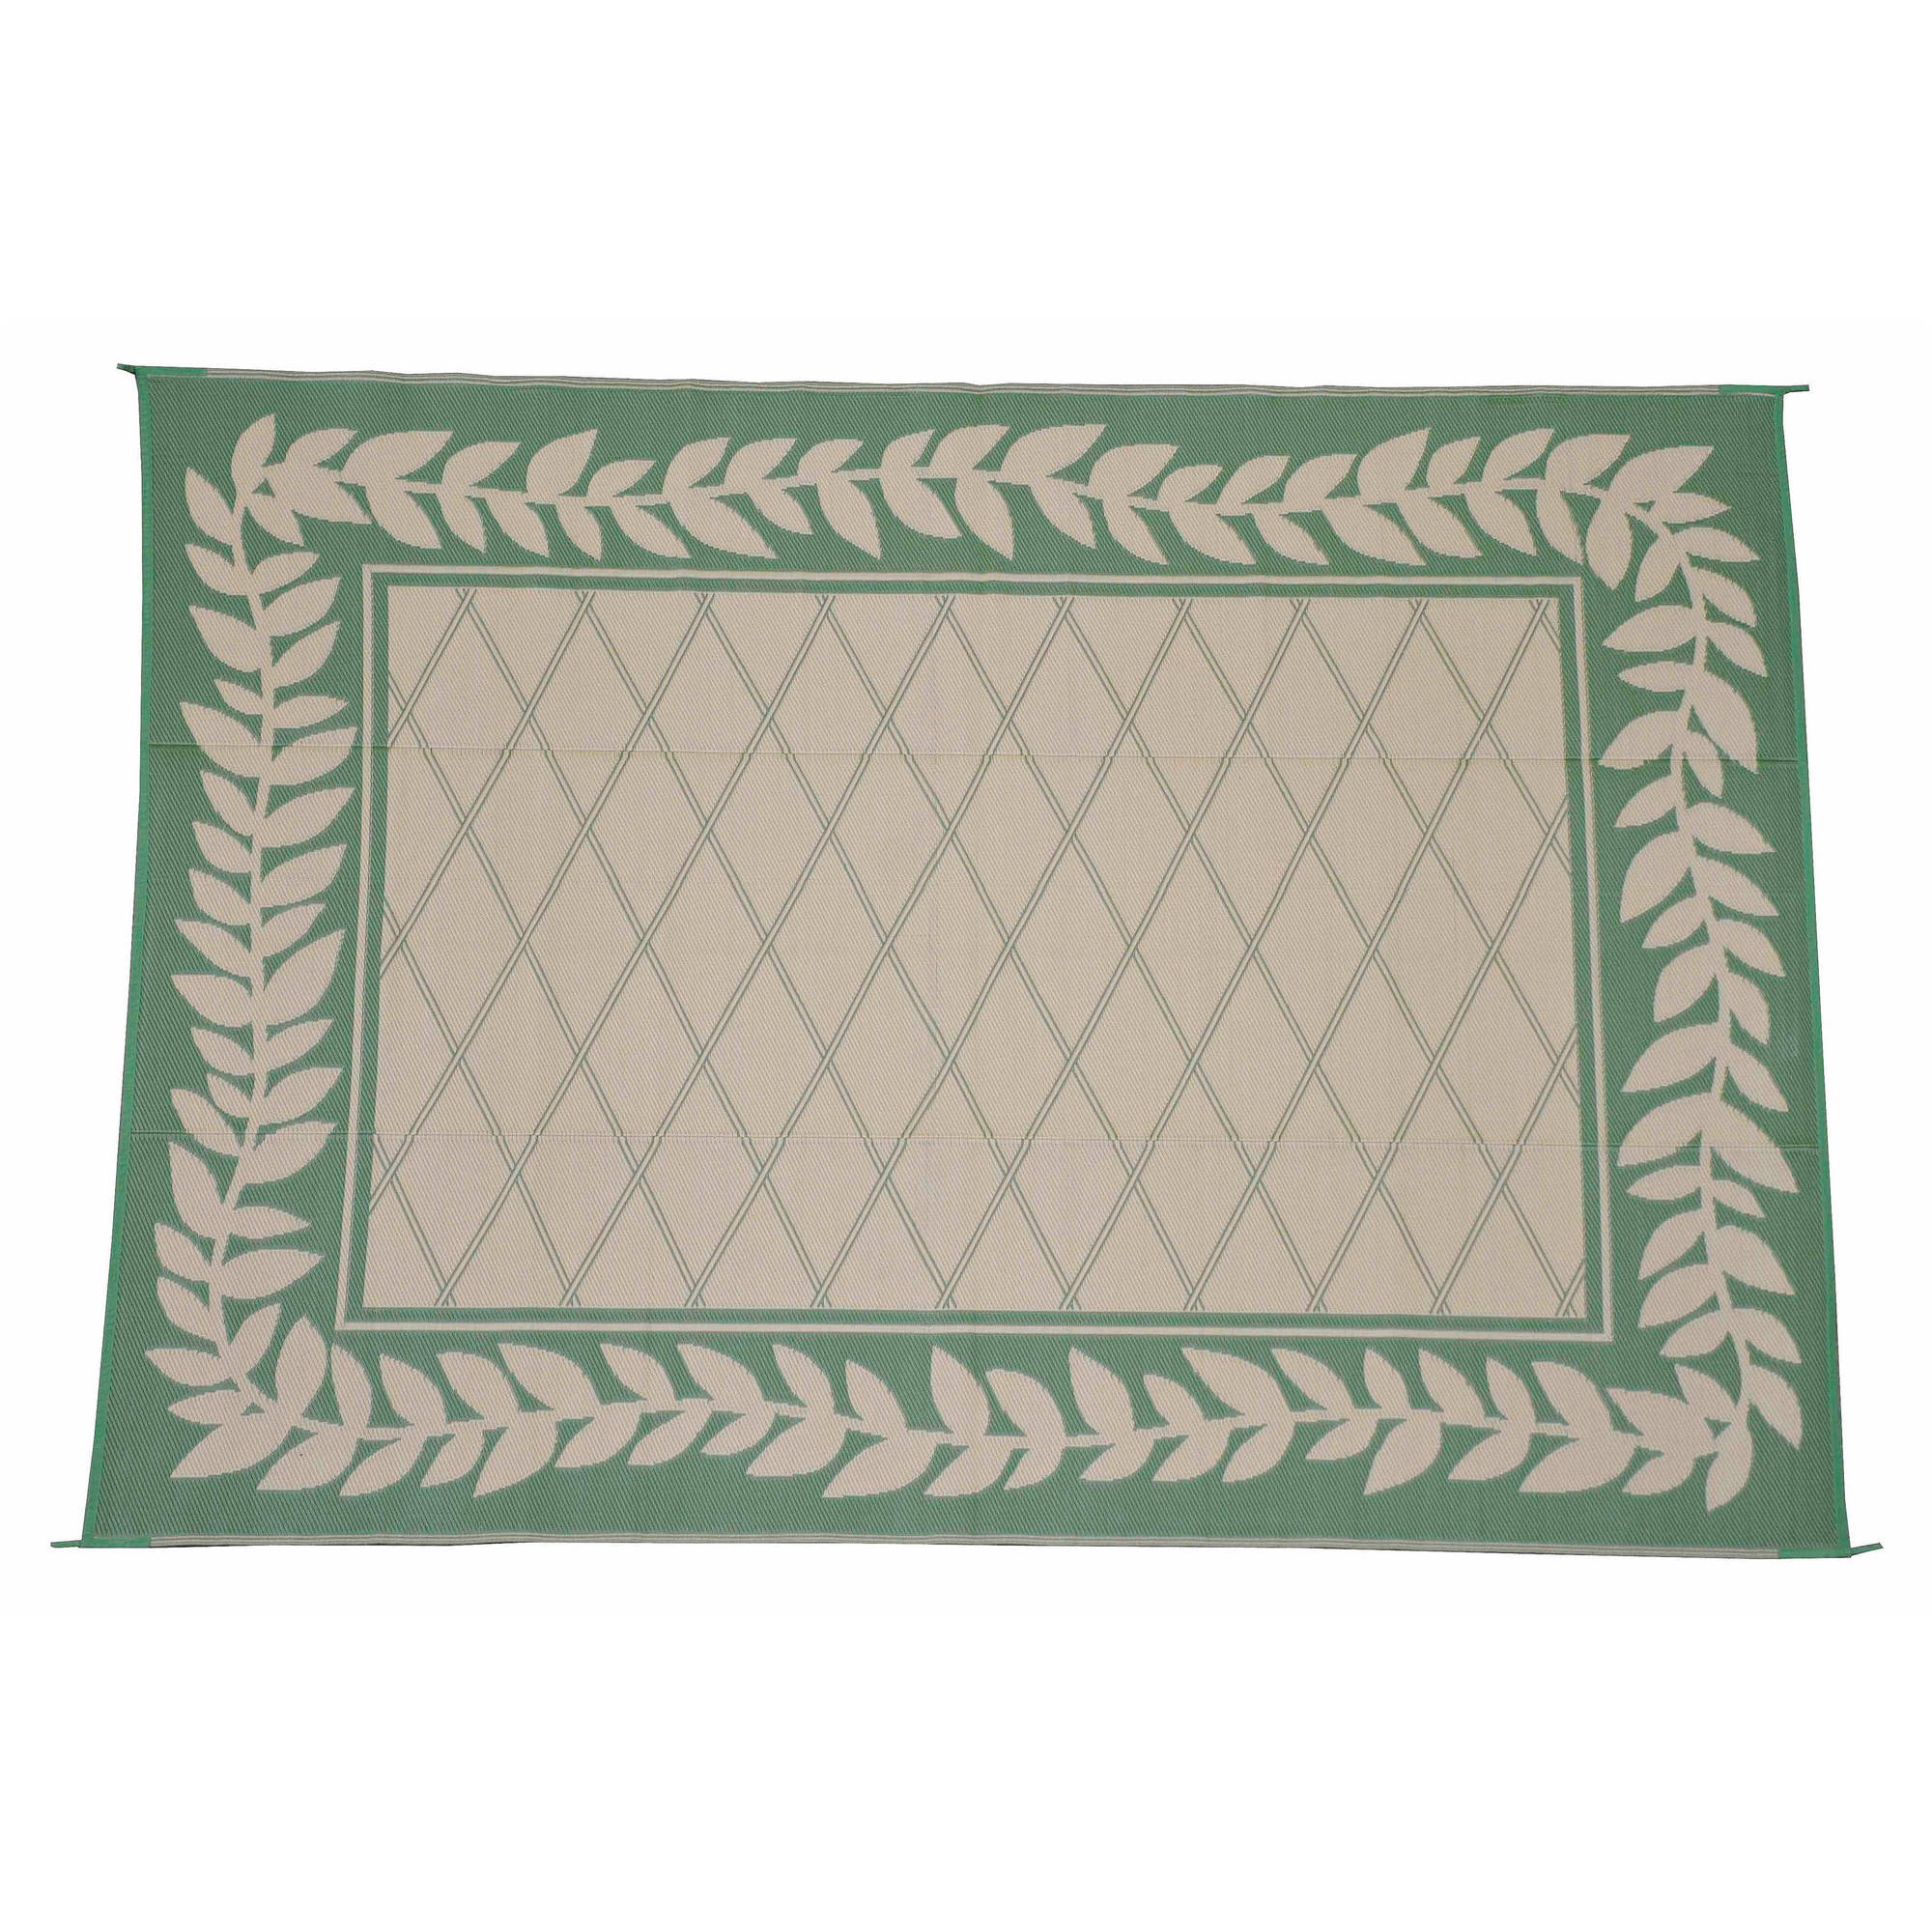 Patiomat Greek Key Patio Mat, 9x12